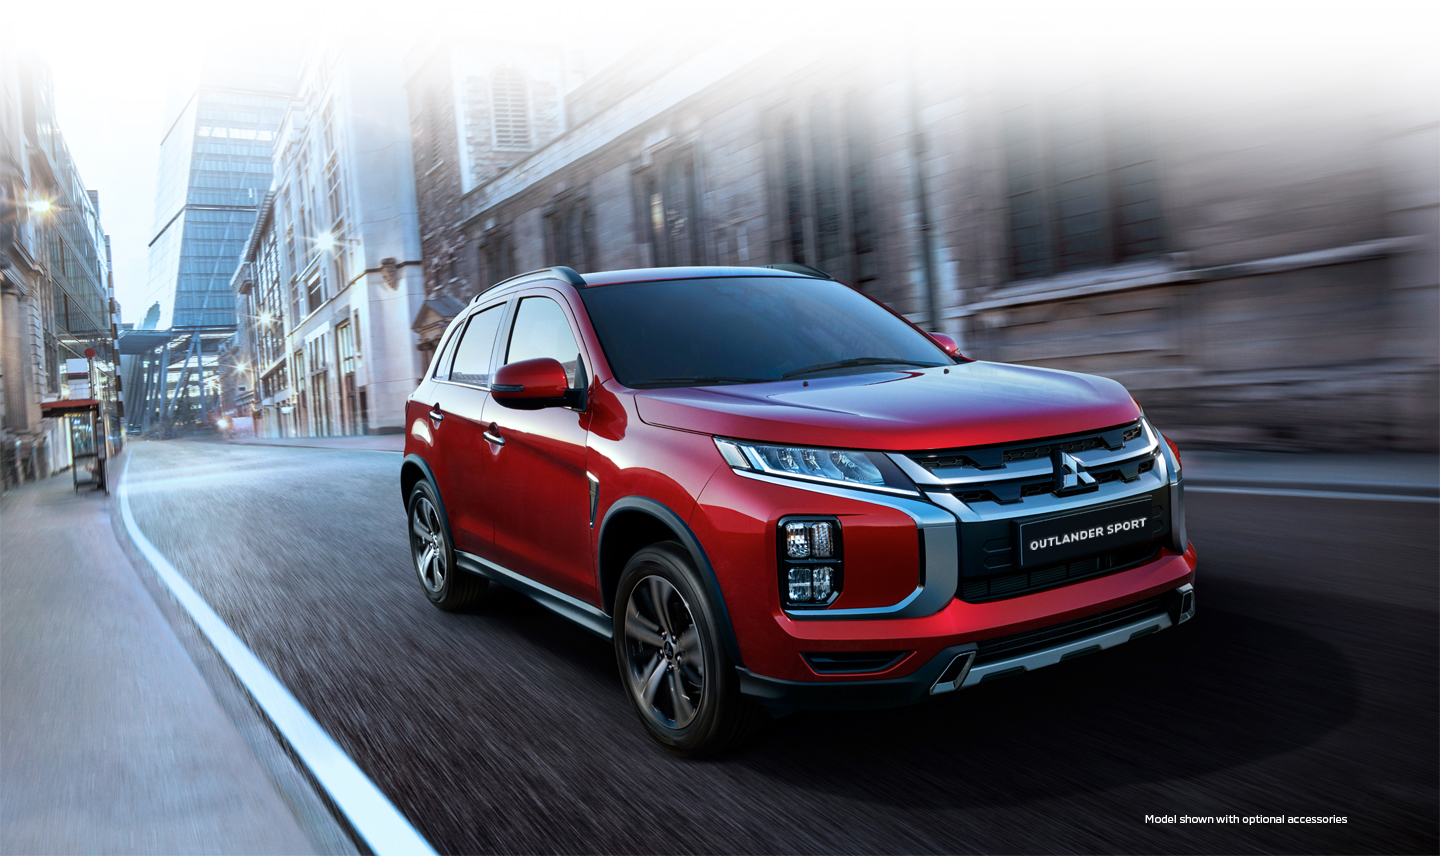 A red 2020 Mitsubishi Outlander sport driving down a city street